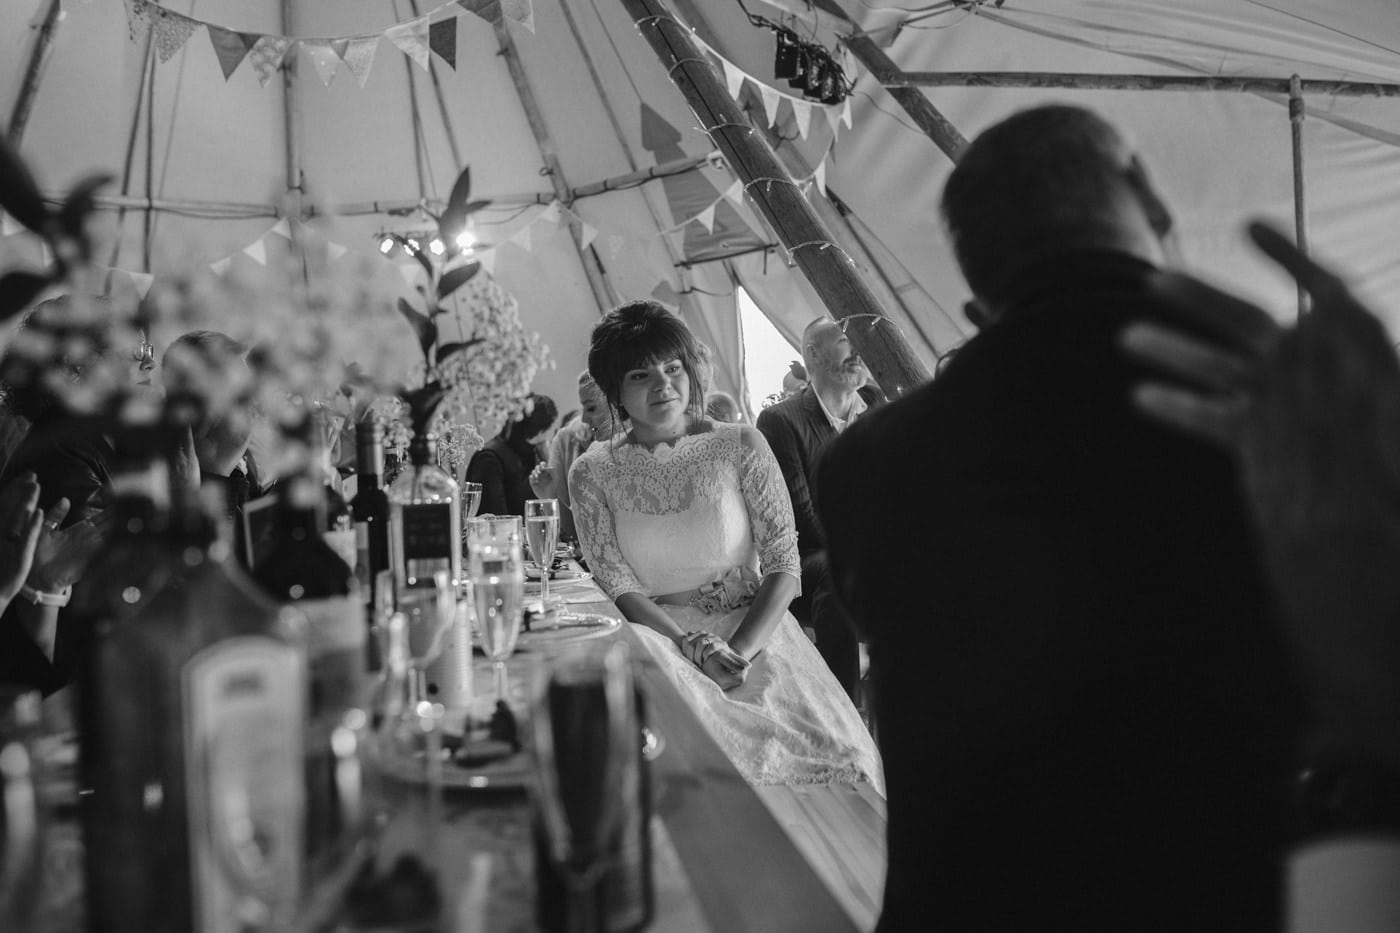 Single Portrait of Bride Under Tipi Tent Wedding Venue